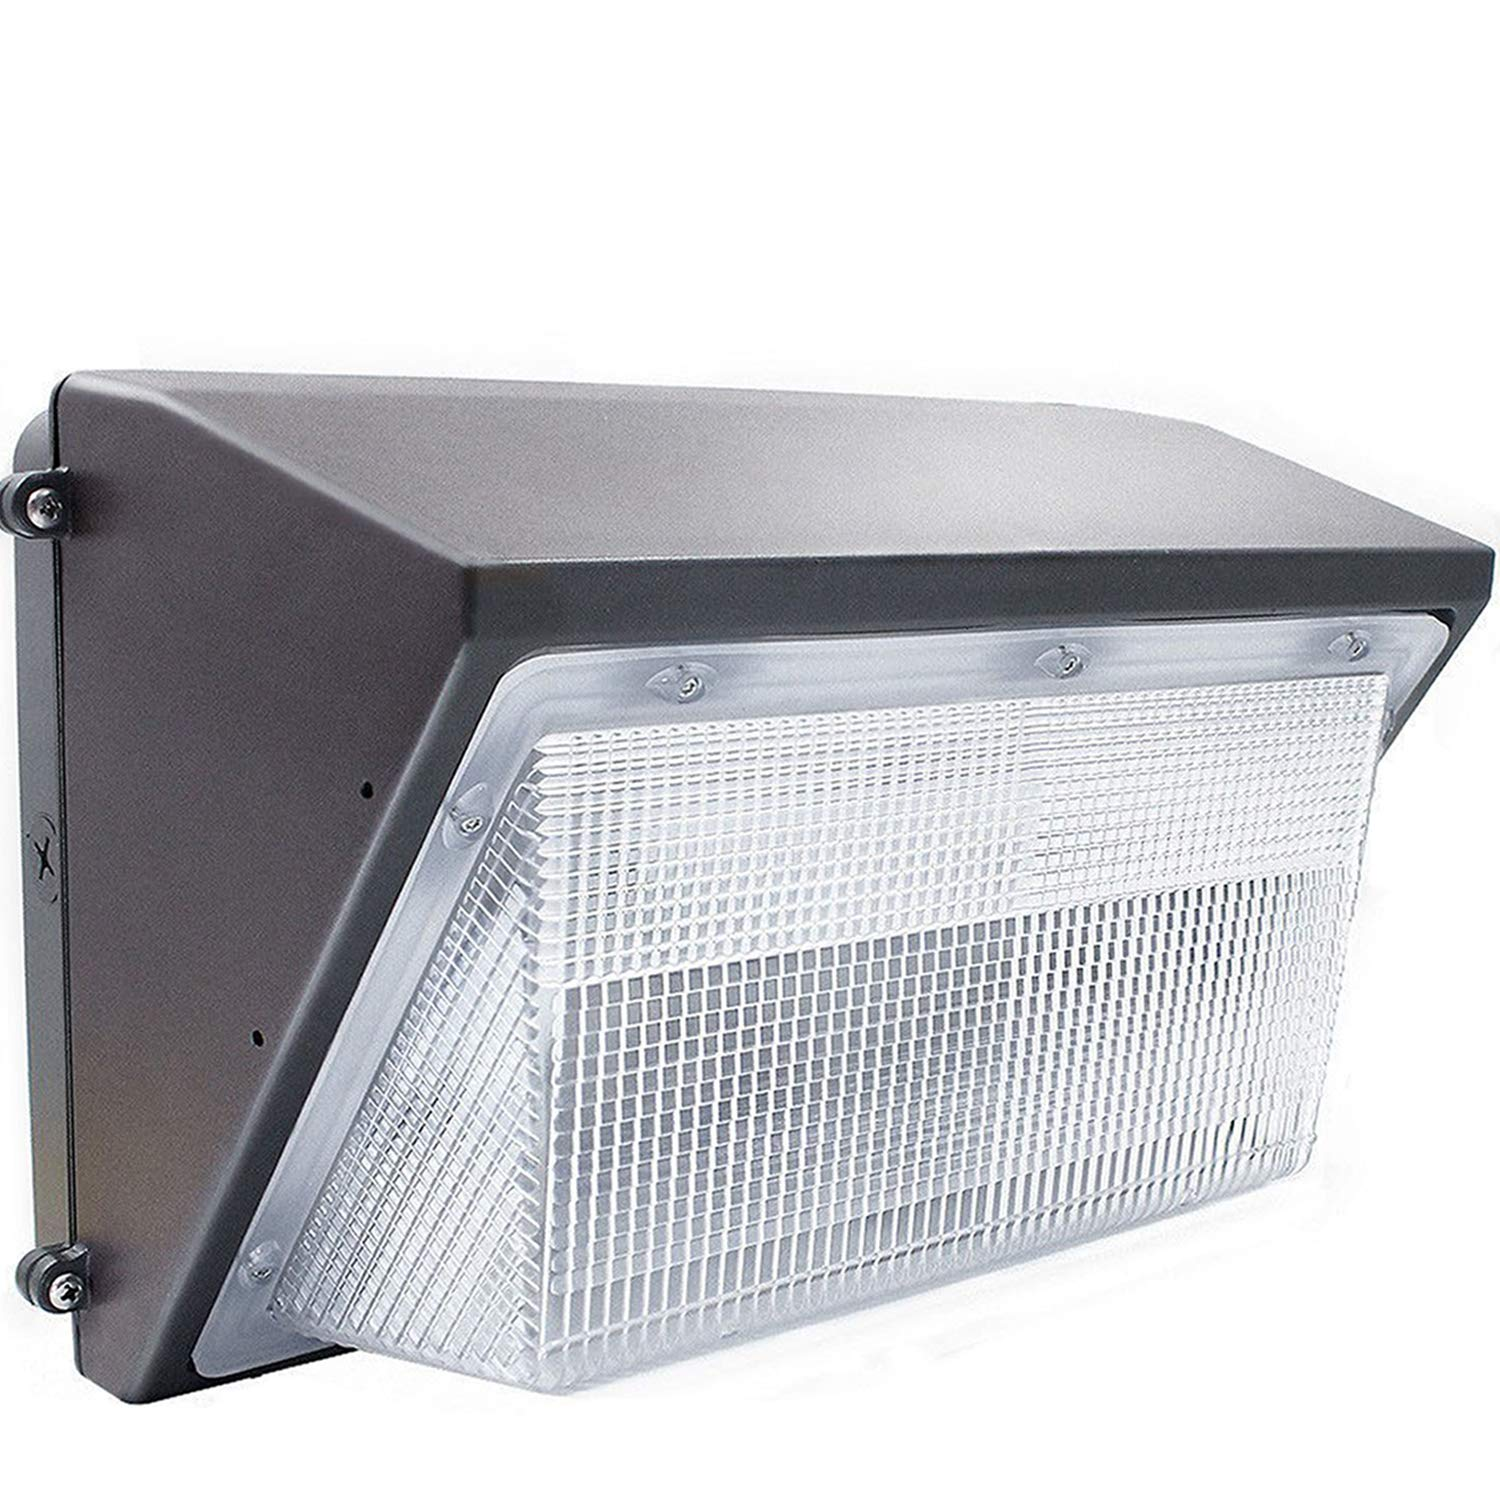 150W LED Wall Pack Light,ETL List,18000lm and 5500K Super Bright White,Outdoor LED Security Light,600-800W HPS Metal Halide Bulb Replacement (150Watt)